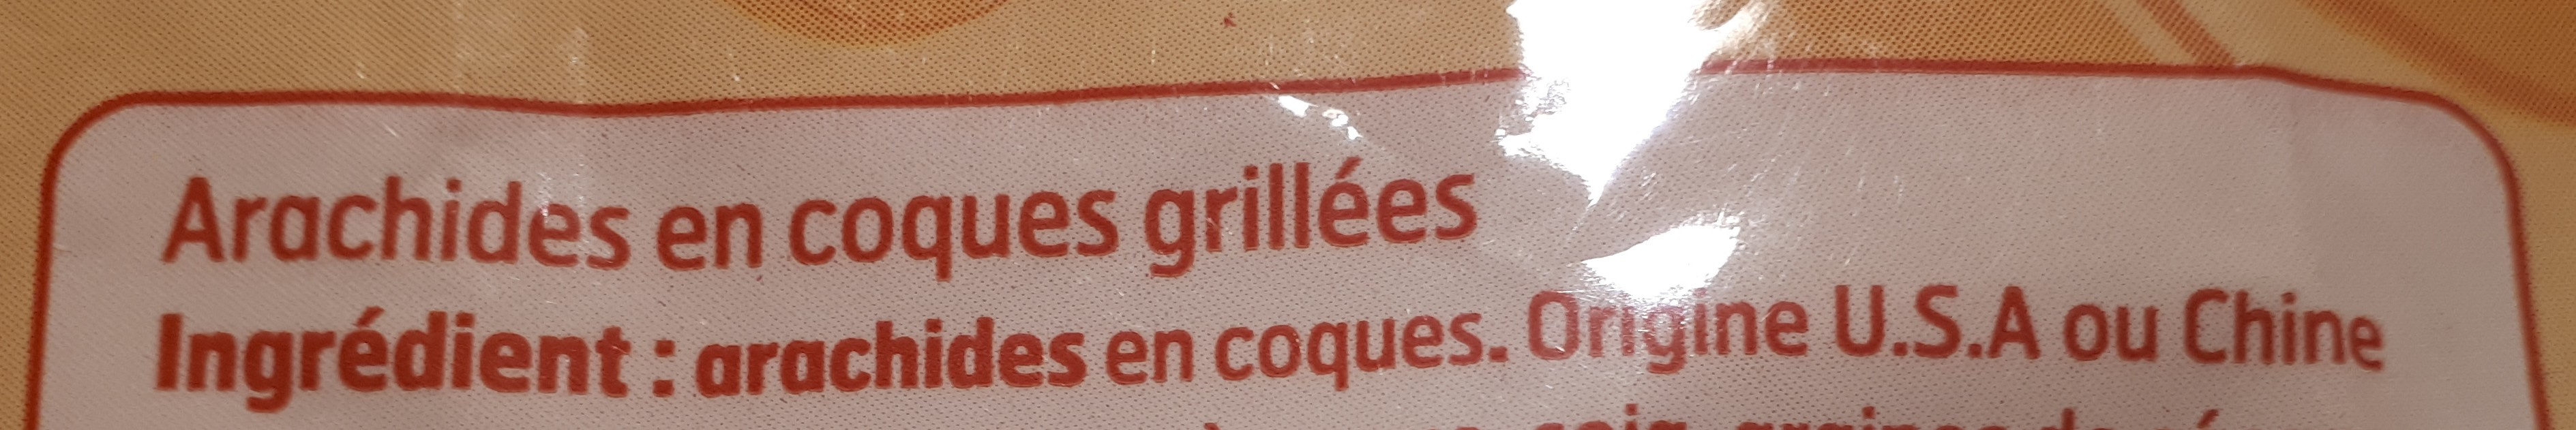 Arachides en coque grillées - Ingredients